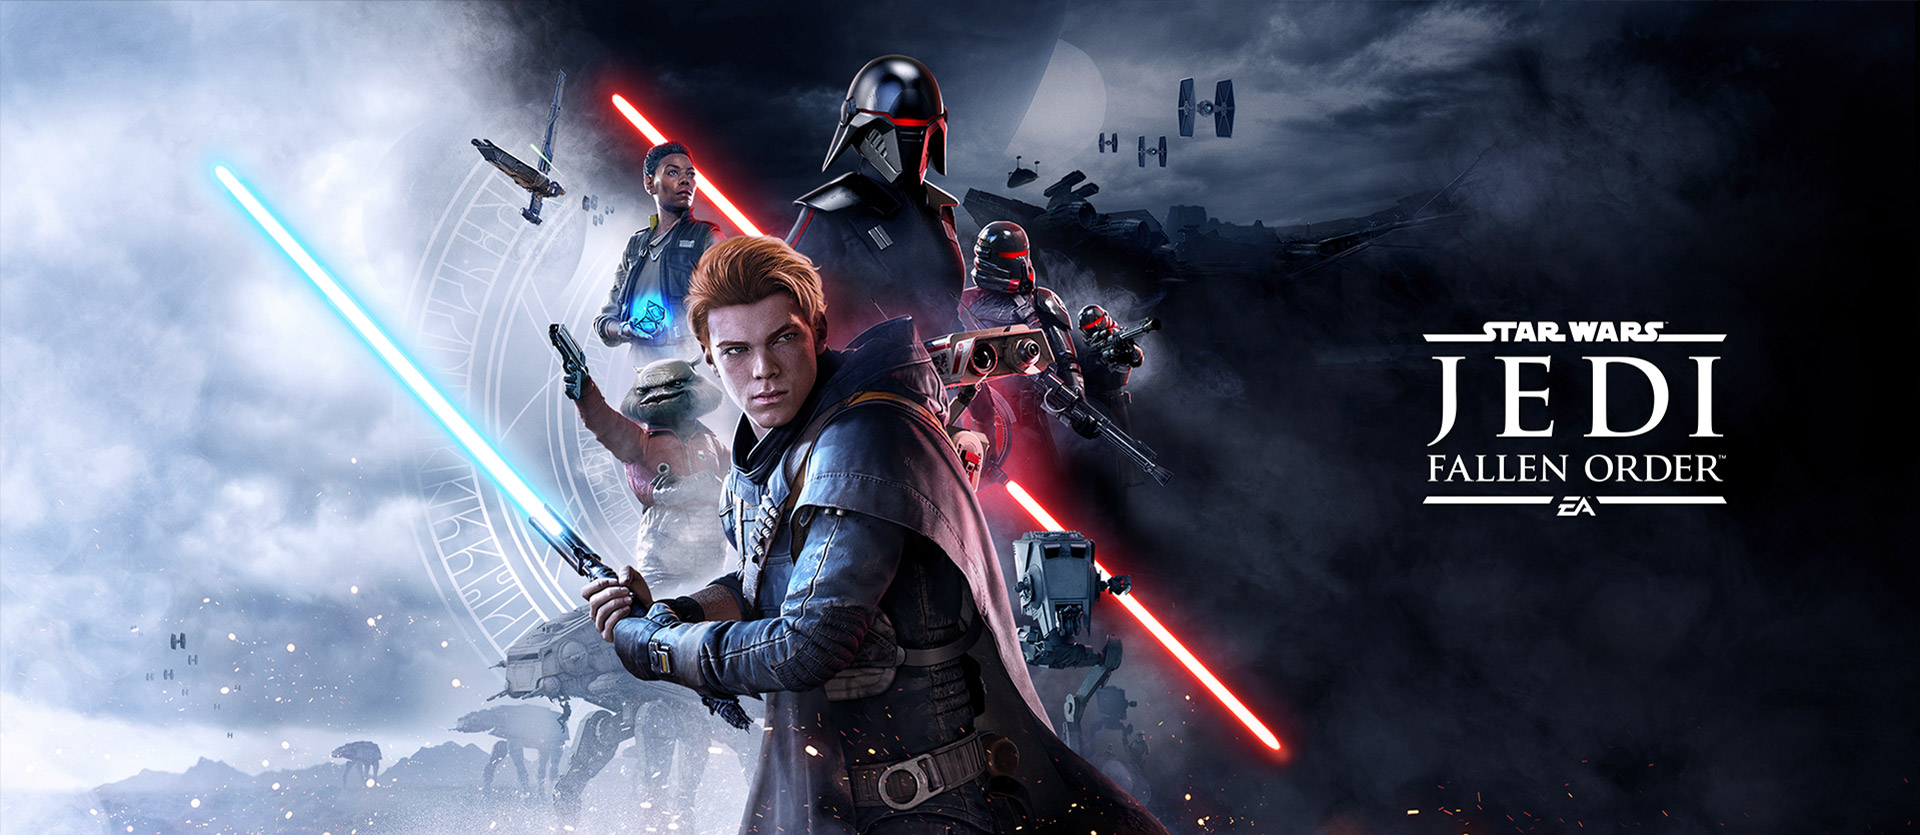 Star Wars Jedi: Fallen Order™, A light and dark image split by a red lightsaber and good and bad characters